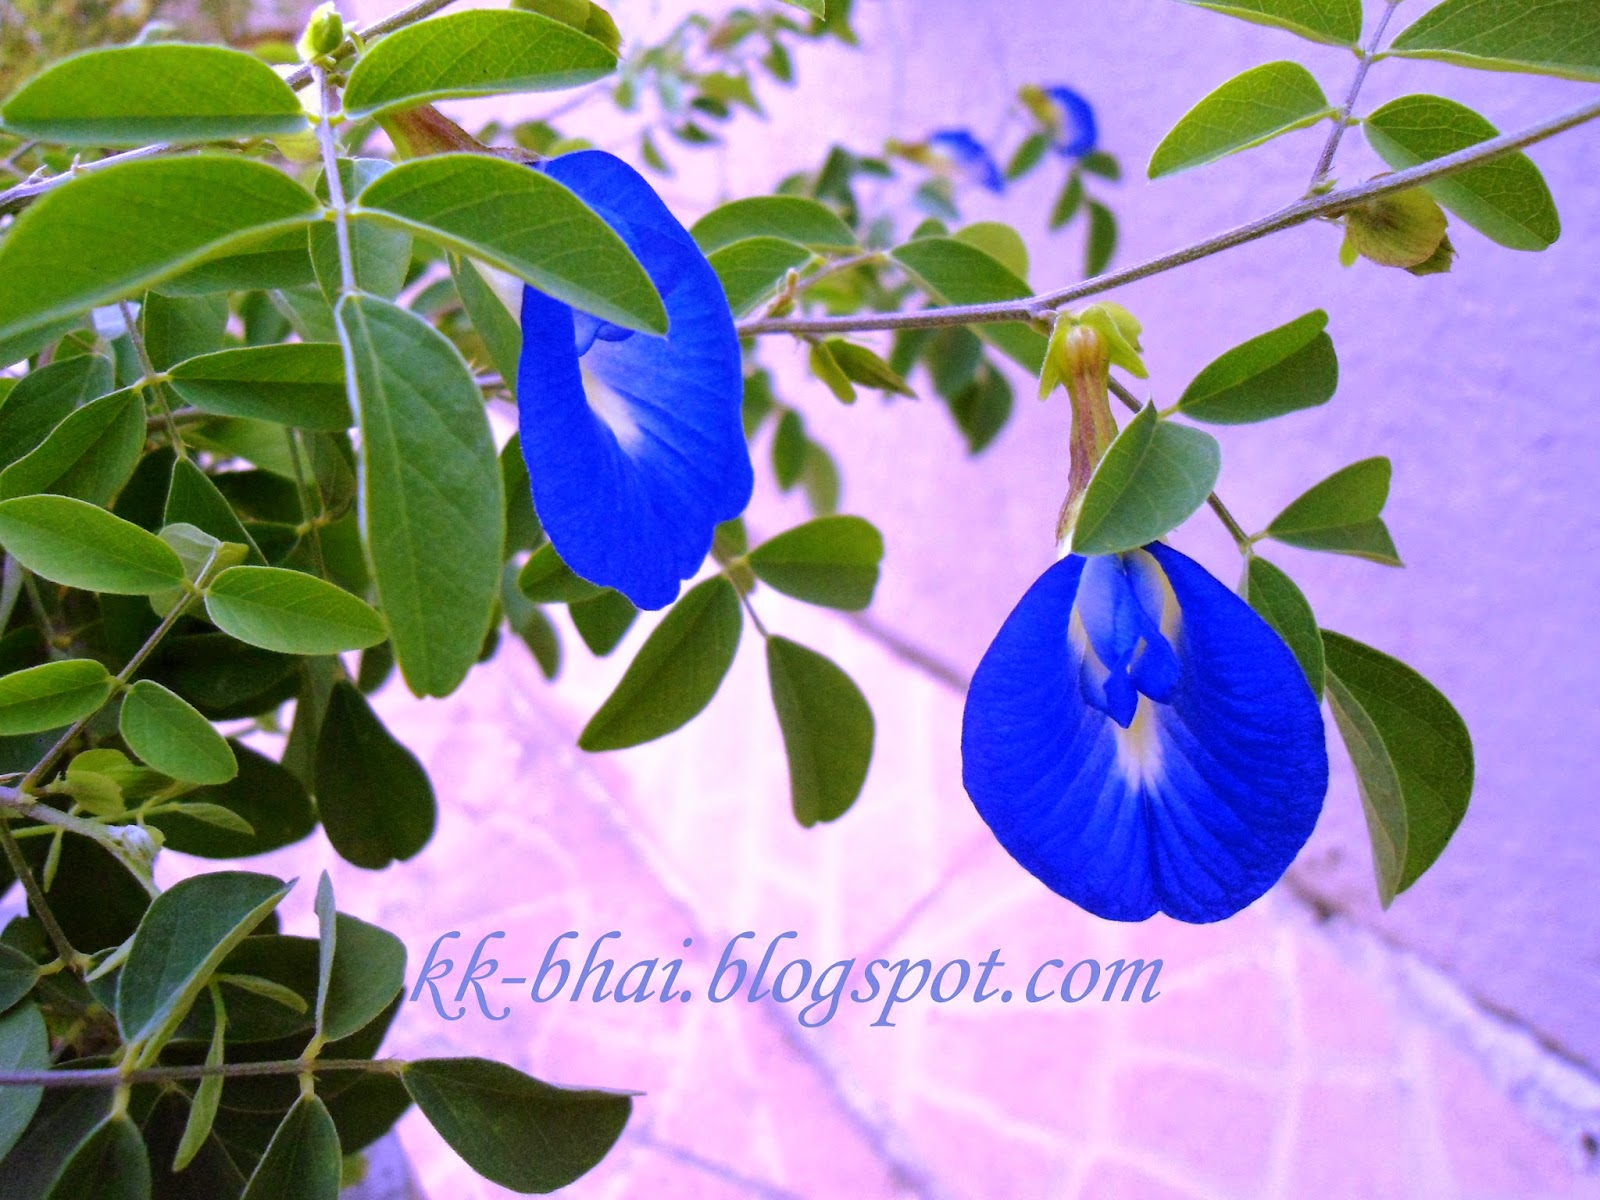 Puja flowers and other things used in puja worship flower of aparajita shankhpushp blus pea butterfly pea or pigeon wings izmirmasajfo